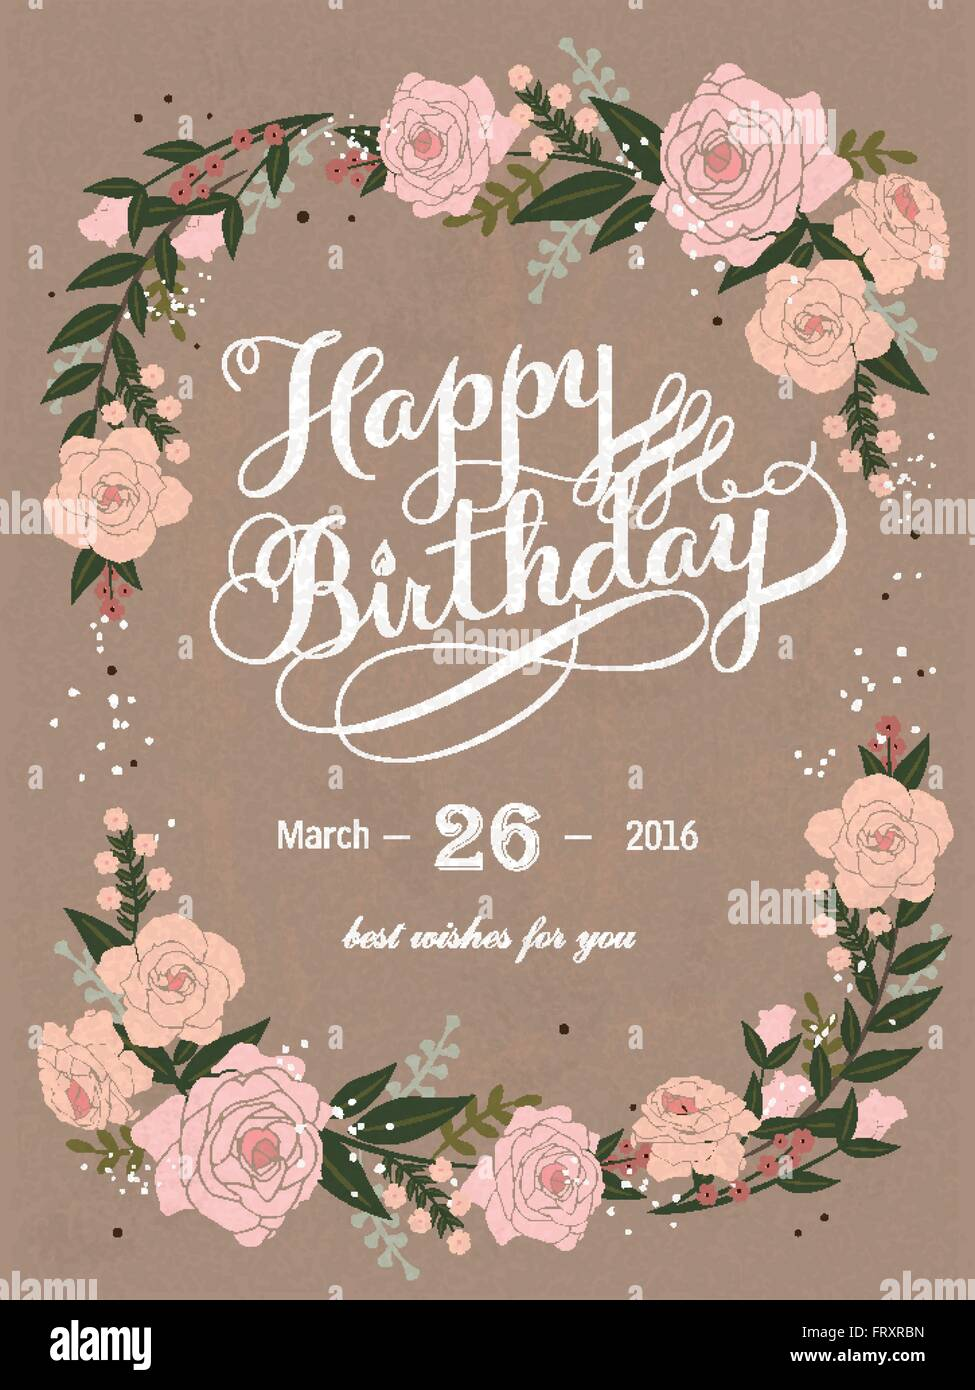 romantic happy birthday calligraphy and poster design with floral